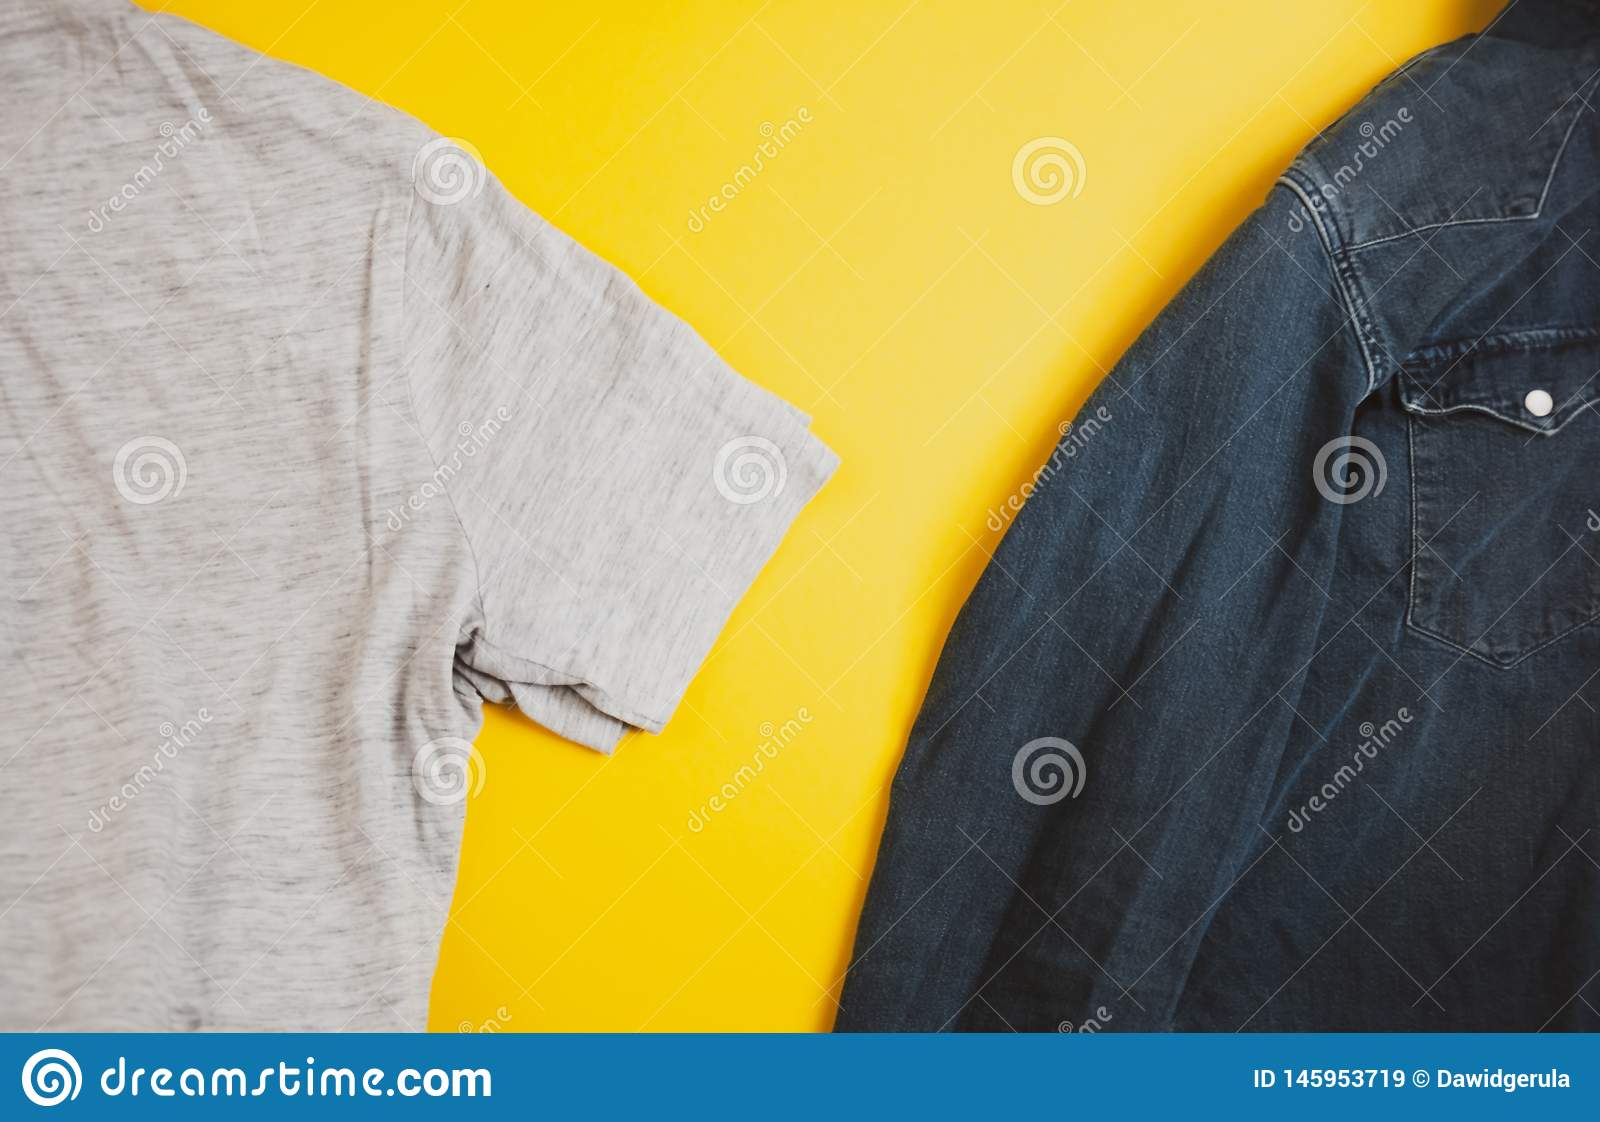 Denim jacket and grey tshirt on two sides of the photo, on yellow background, with copyspace